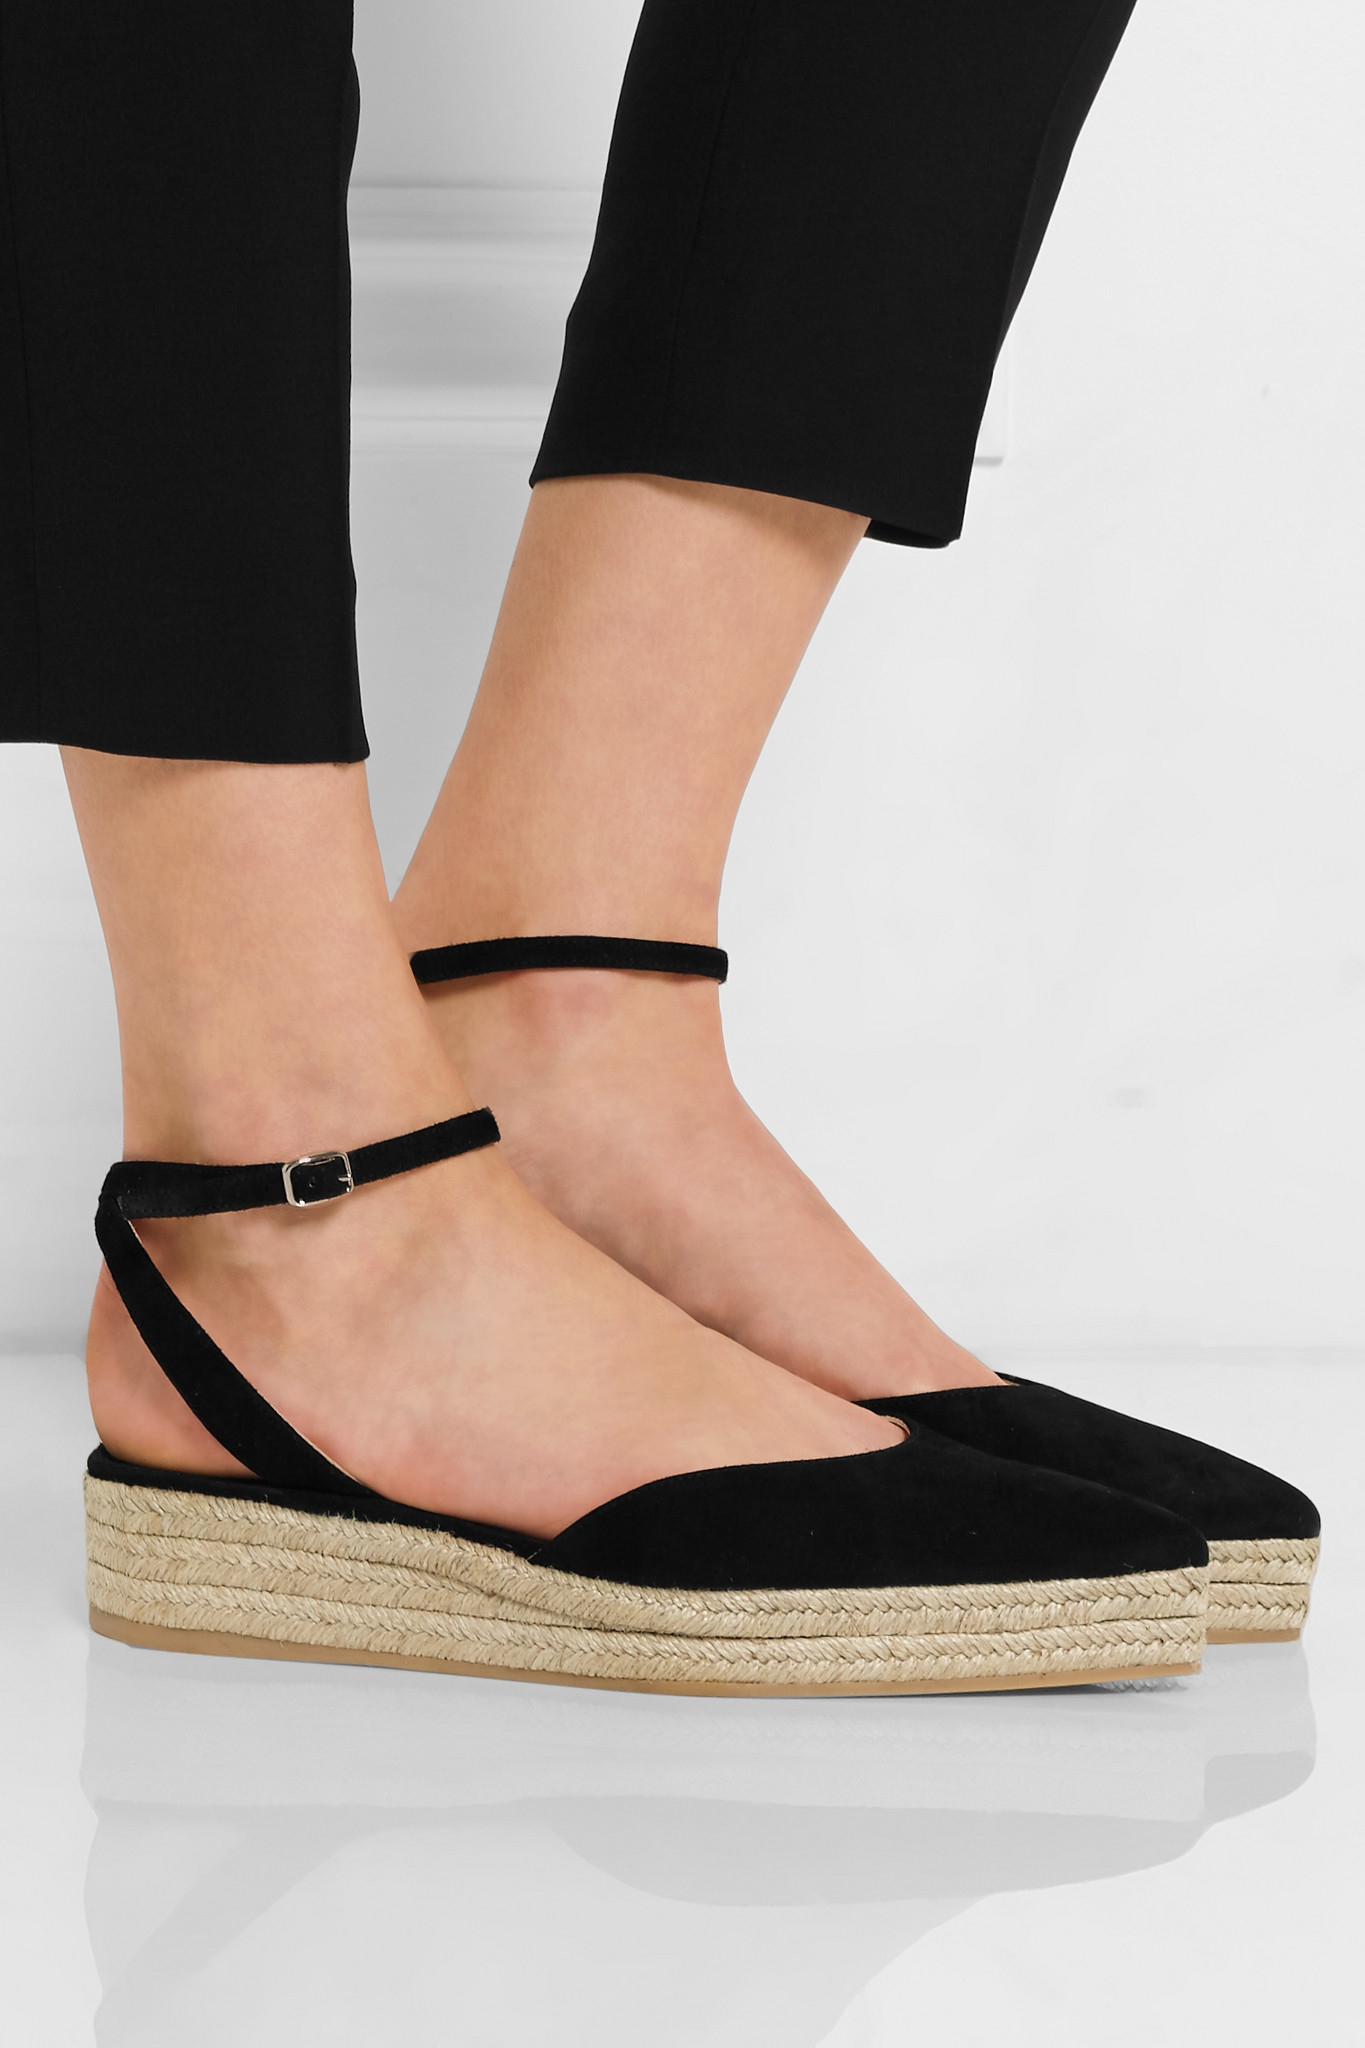 cheap buy authentic discount Paul Andrew Rhea espadrilles cheap sale hot sale low price fee shipping cheap online outlet best seller y6GUv